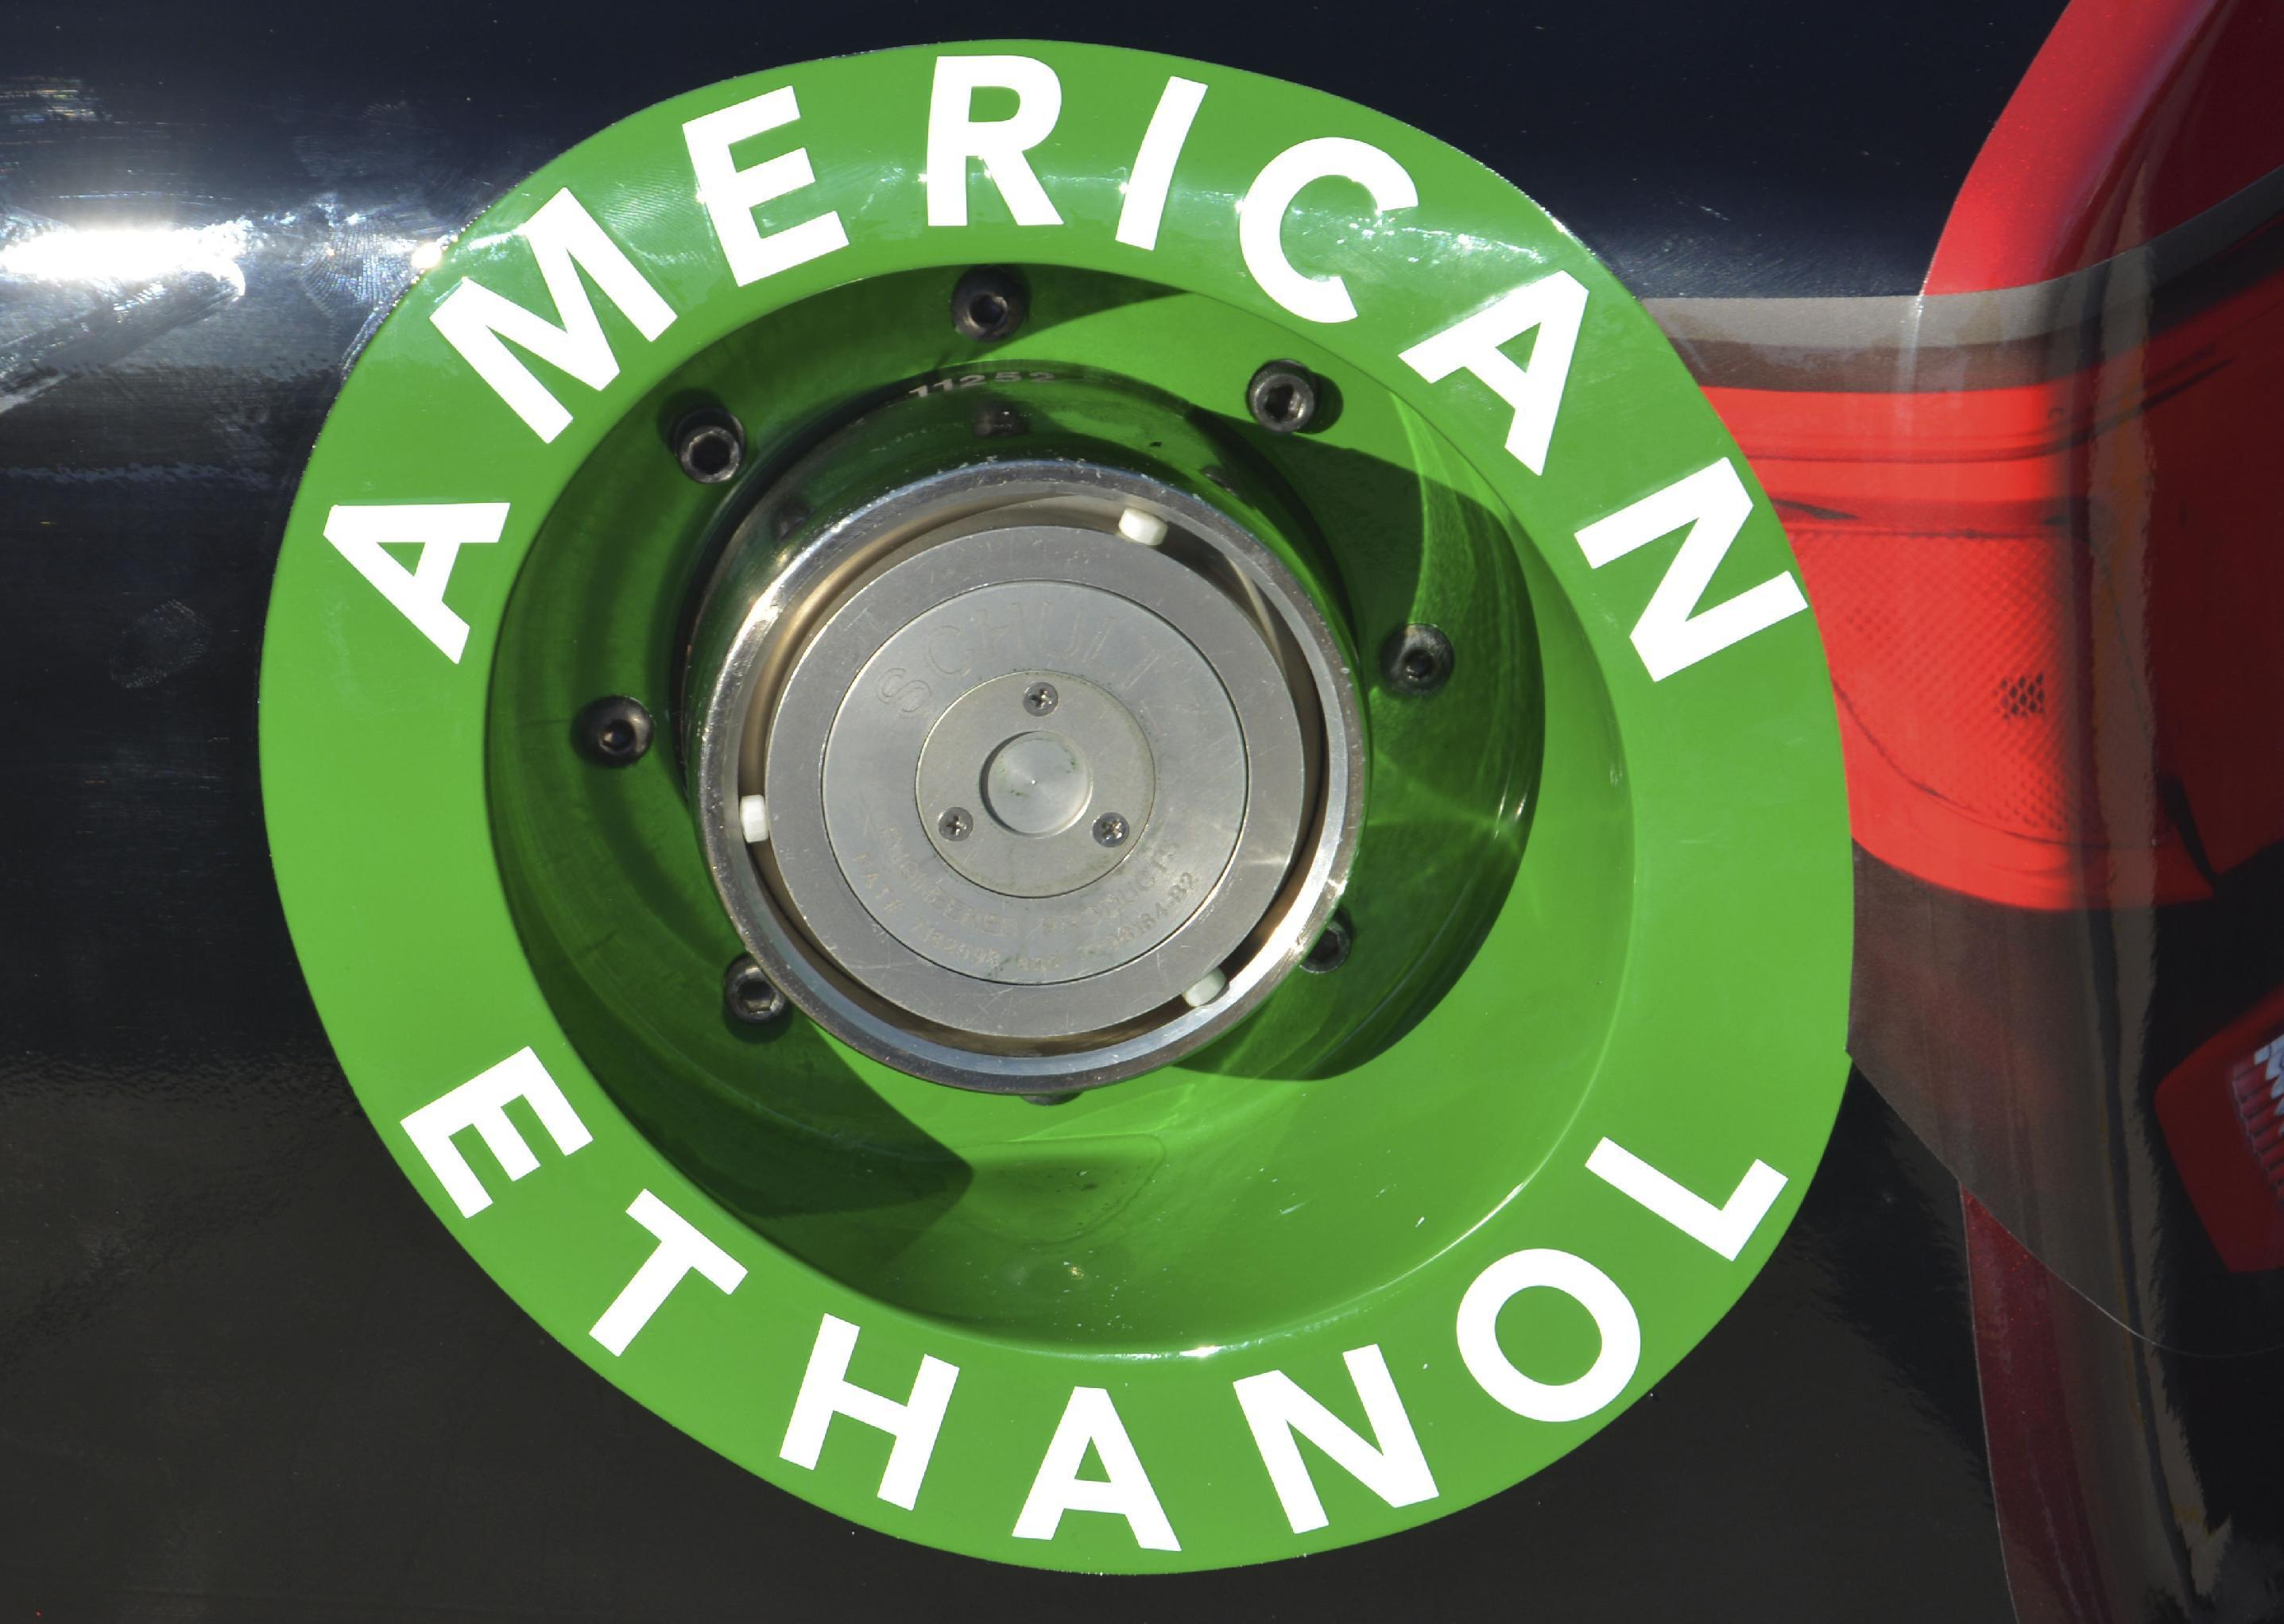 Latest US proposal for ethanol could have political fallout